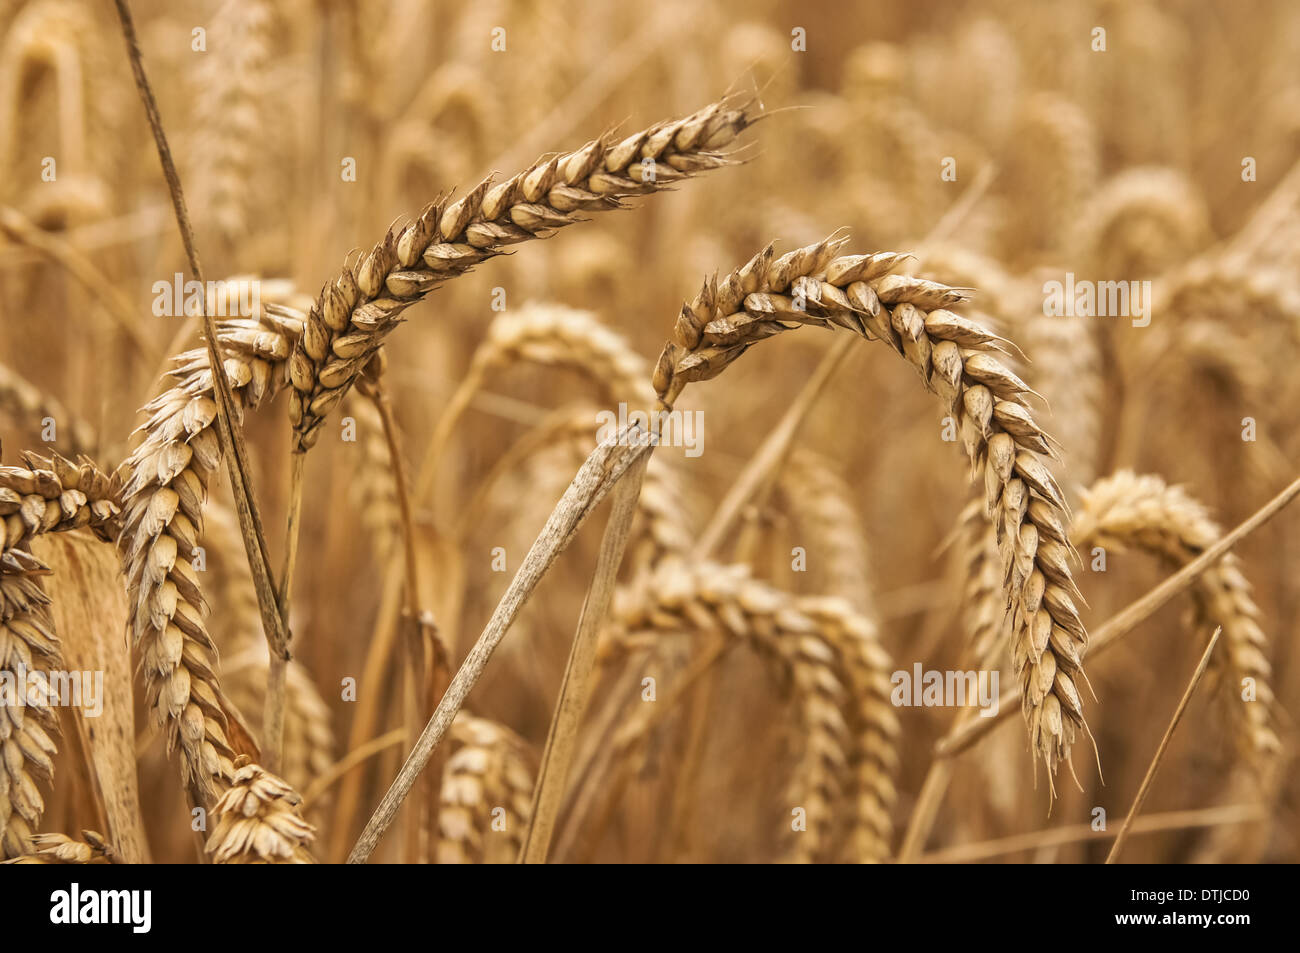 Close up of wheat ears - Stock Image